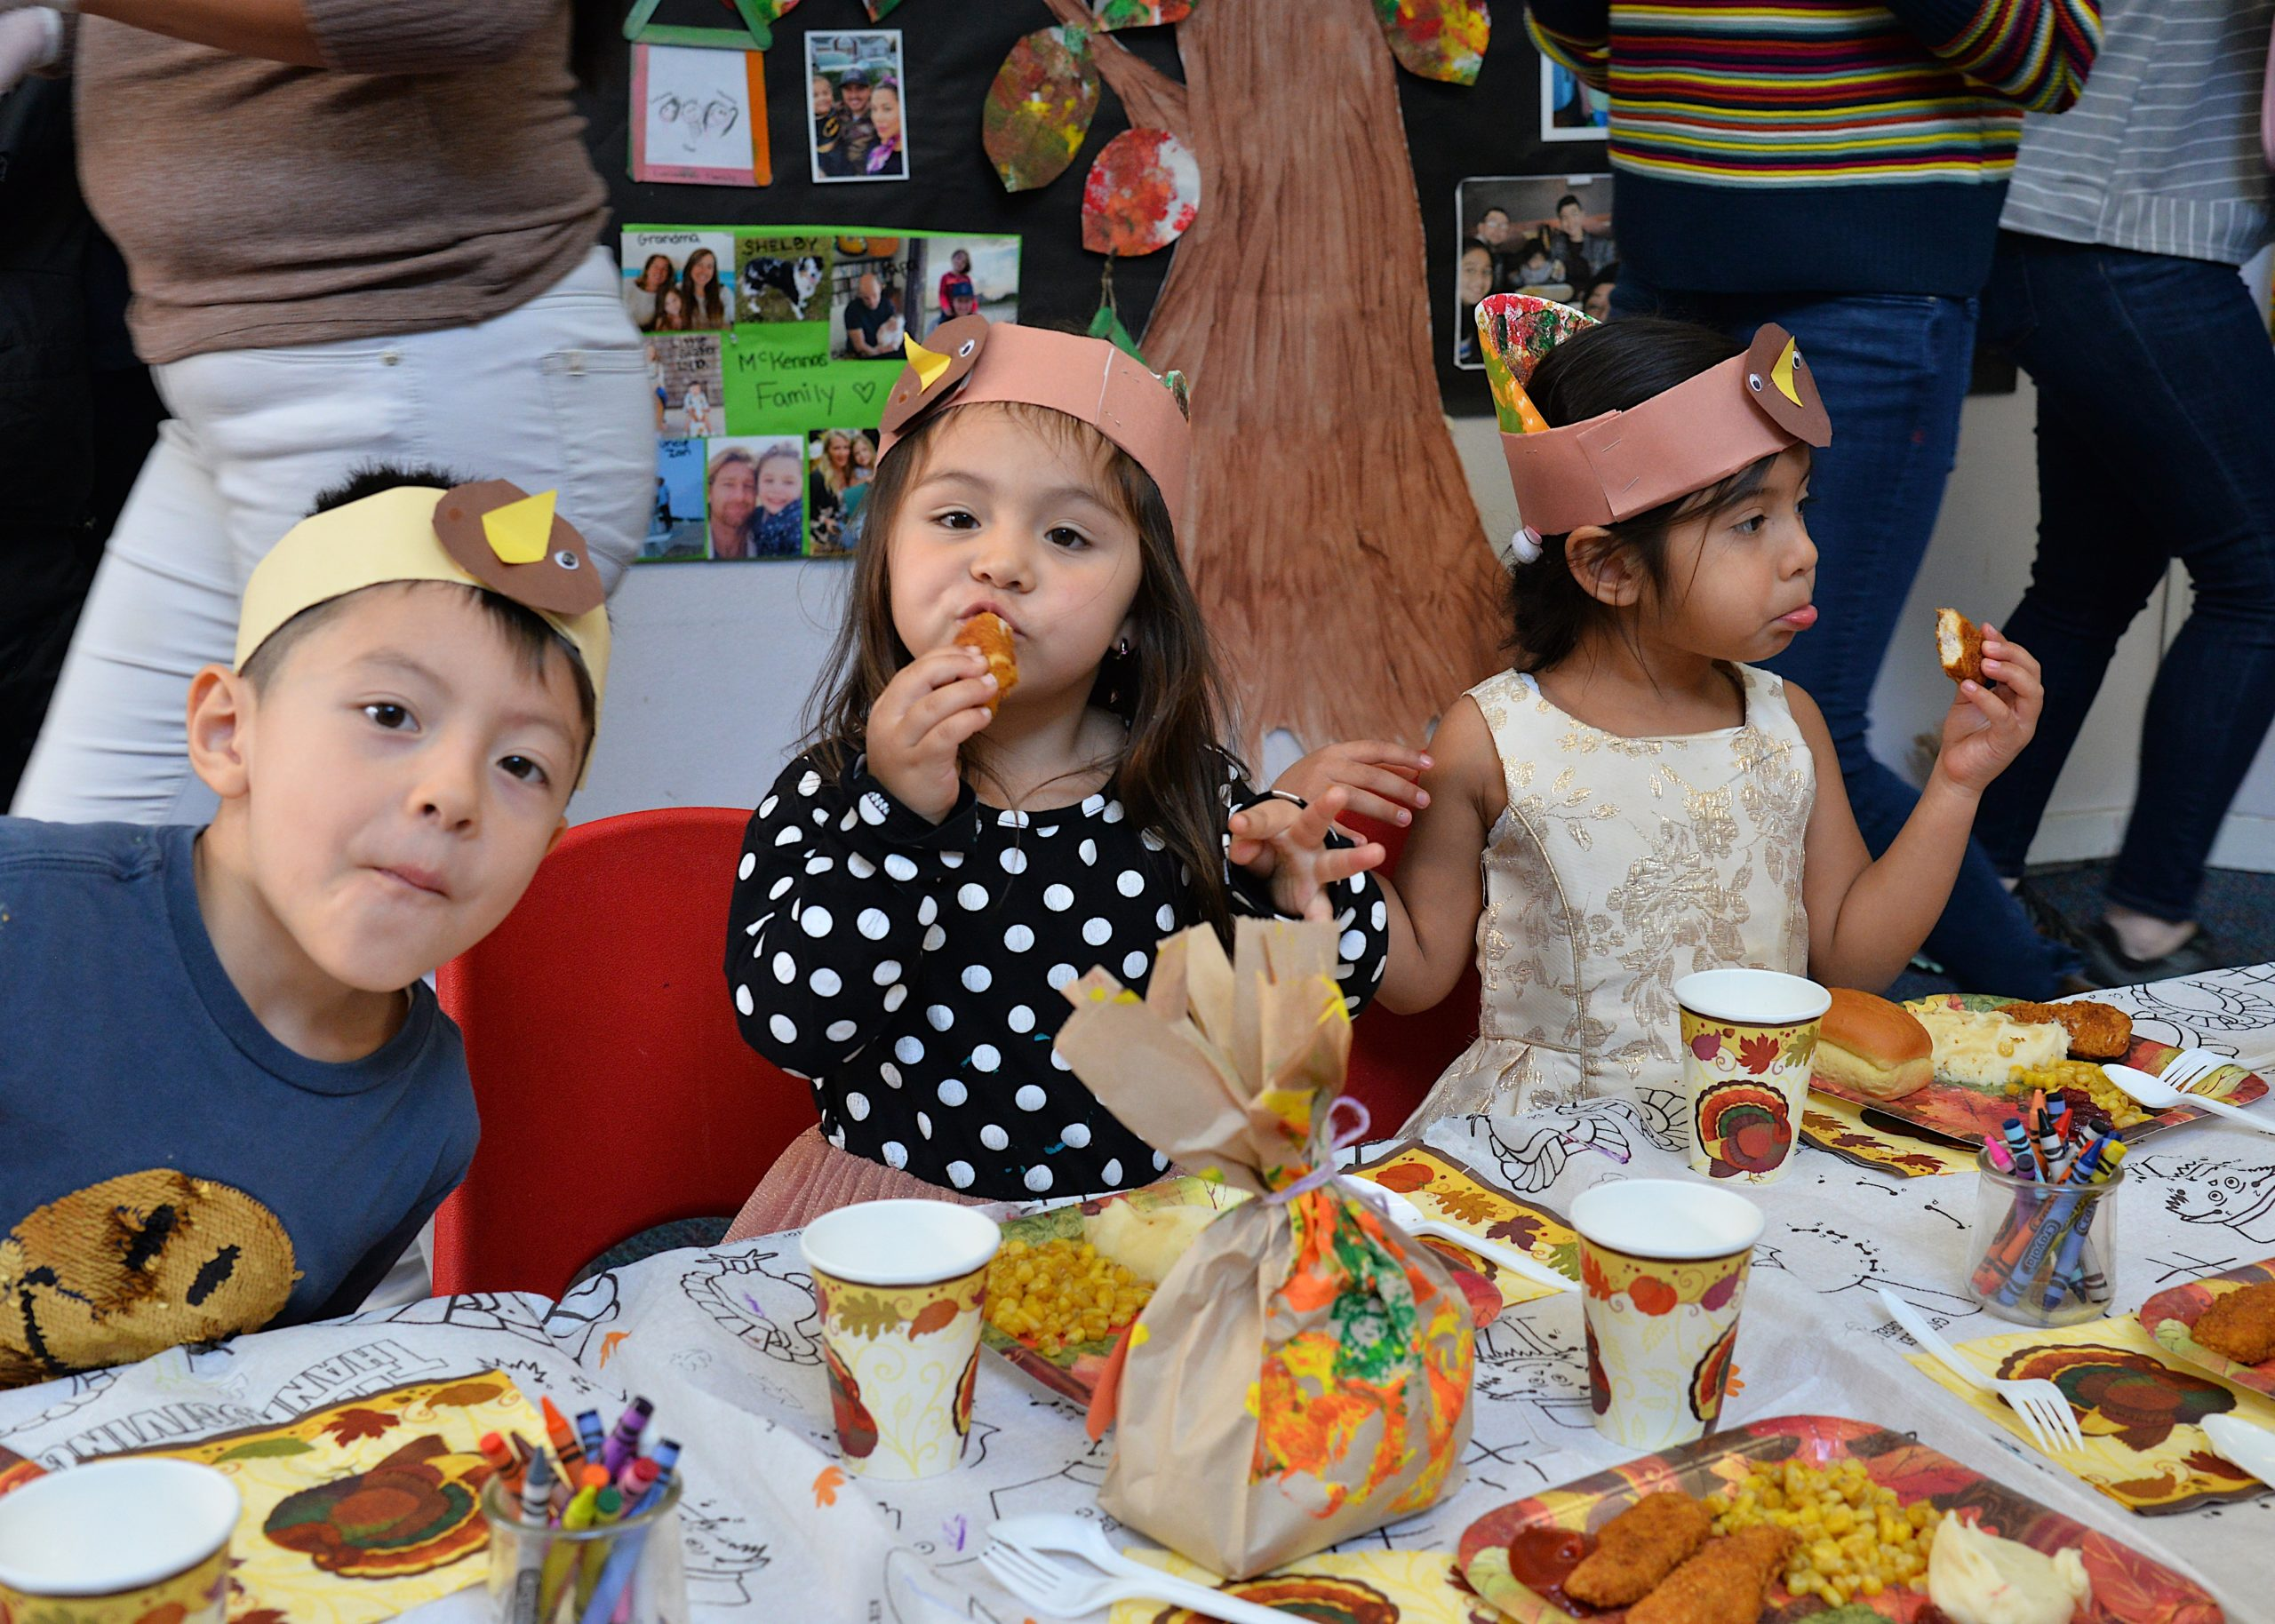 The Eleanor Whitmore Early Childhood Center held a Thanksgiving feast for the children on Monday, with a singing performance to go along with the festive meal. KYRIL BROMLEY